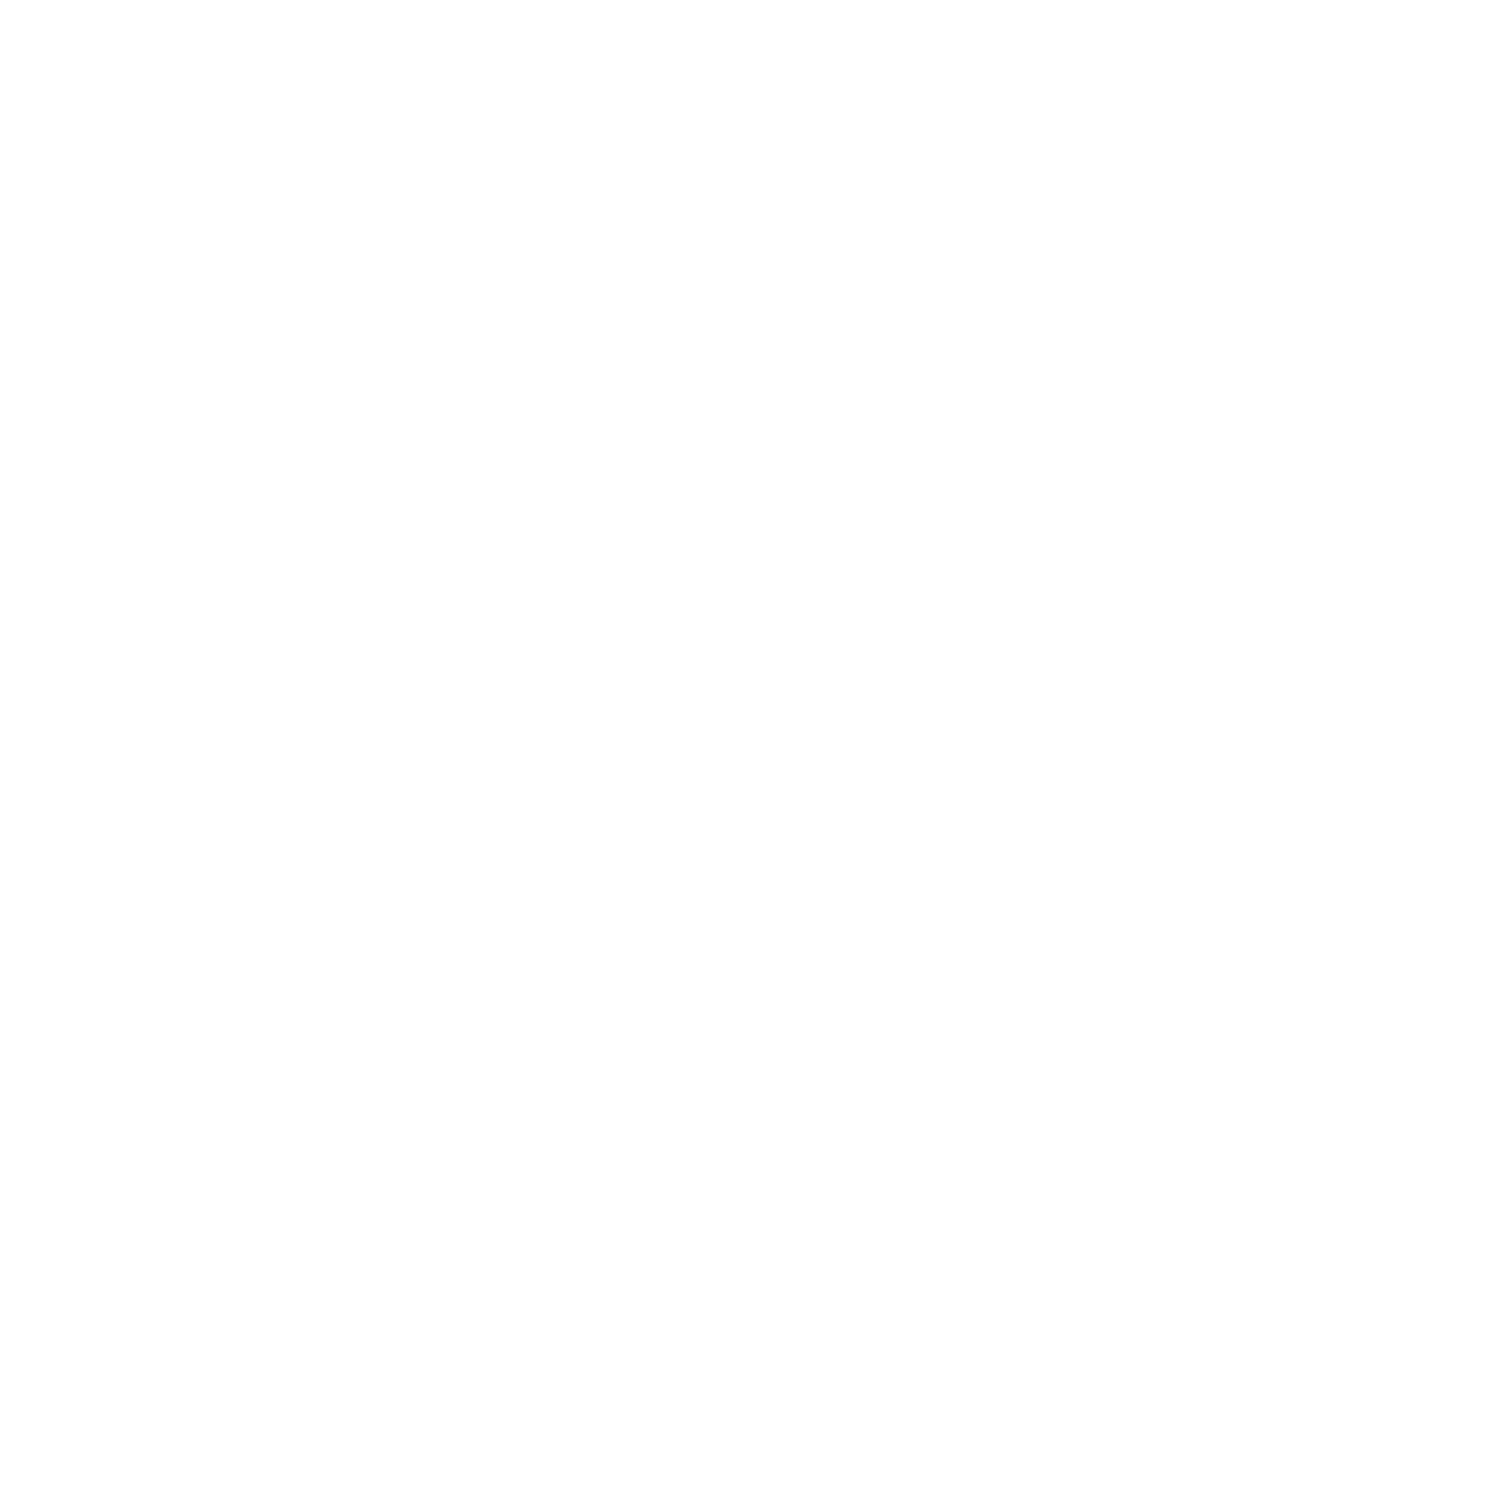 The Kareem Kandi World Orchestra